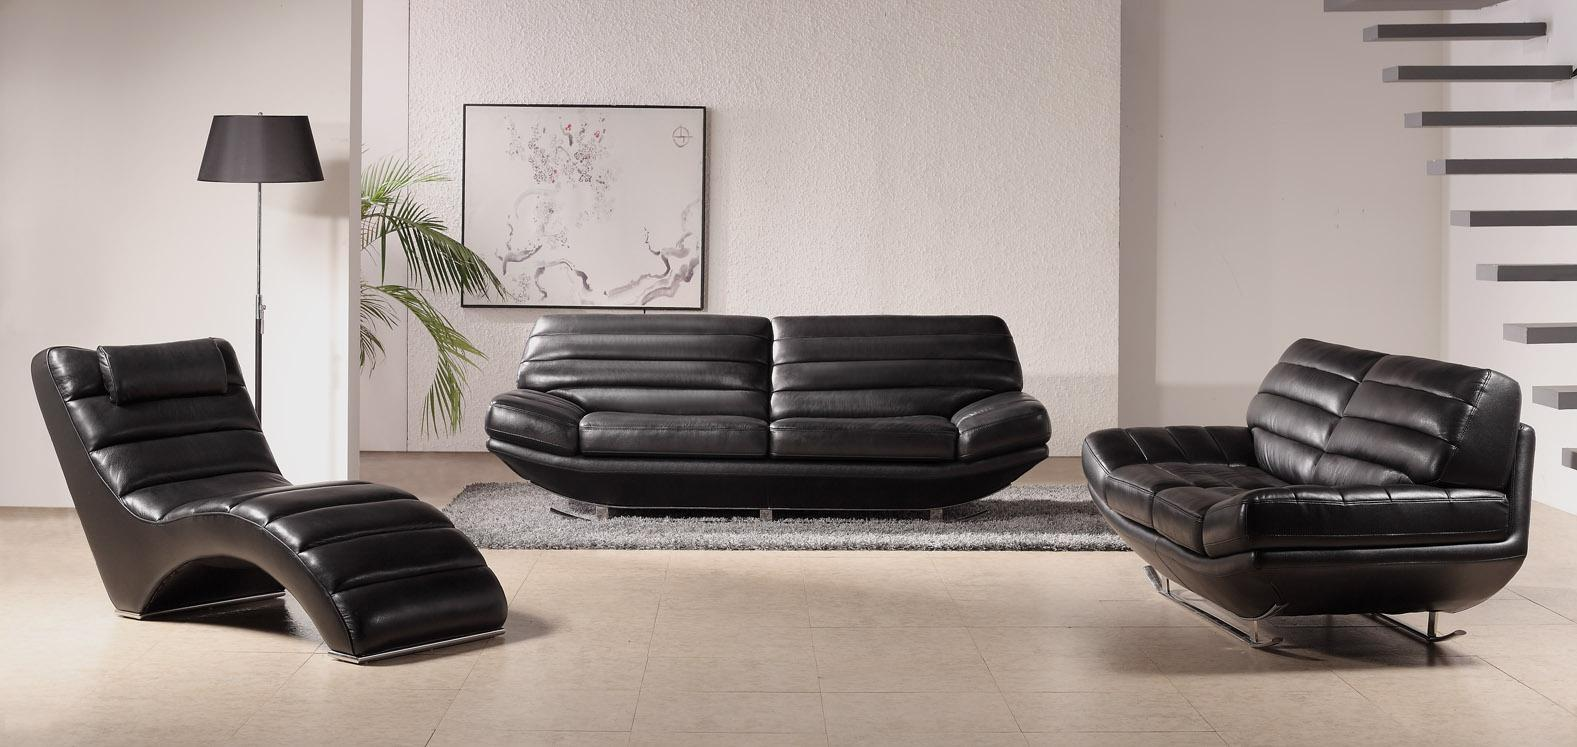 Know about types of couches and sofas my decorative for Living room ideas with black leather sofa